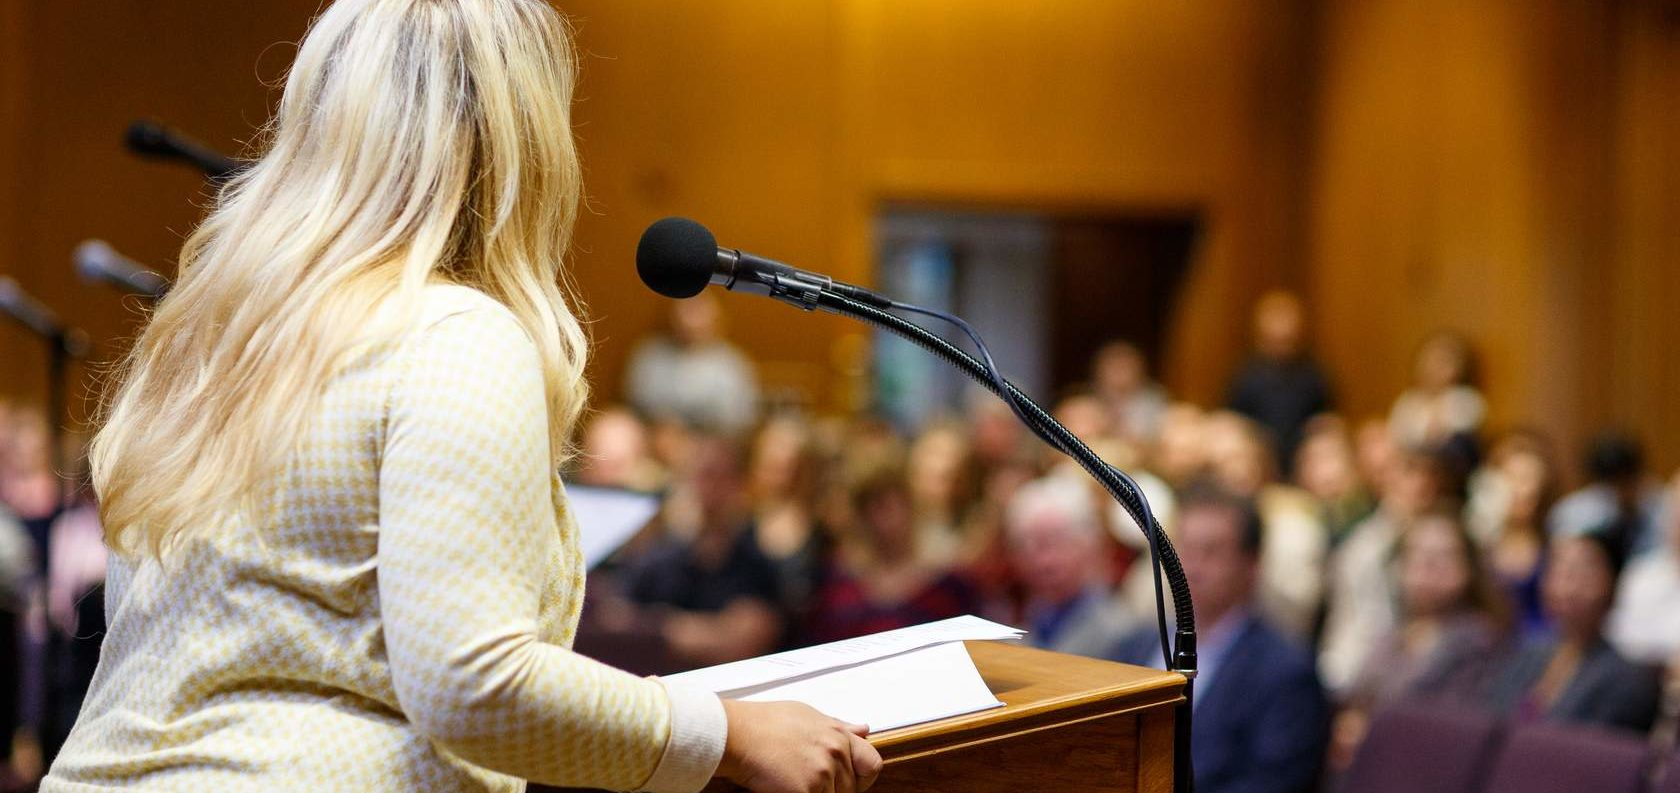 A woman addresses a crowded room from a lectern